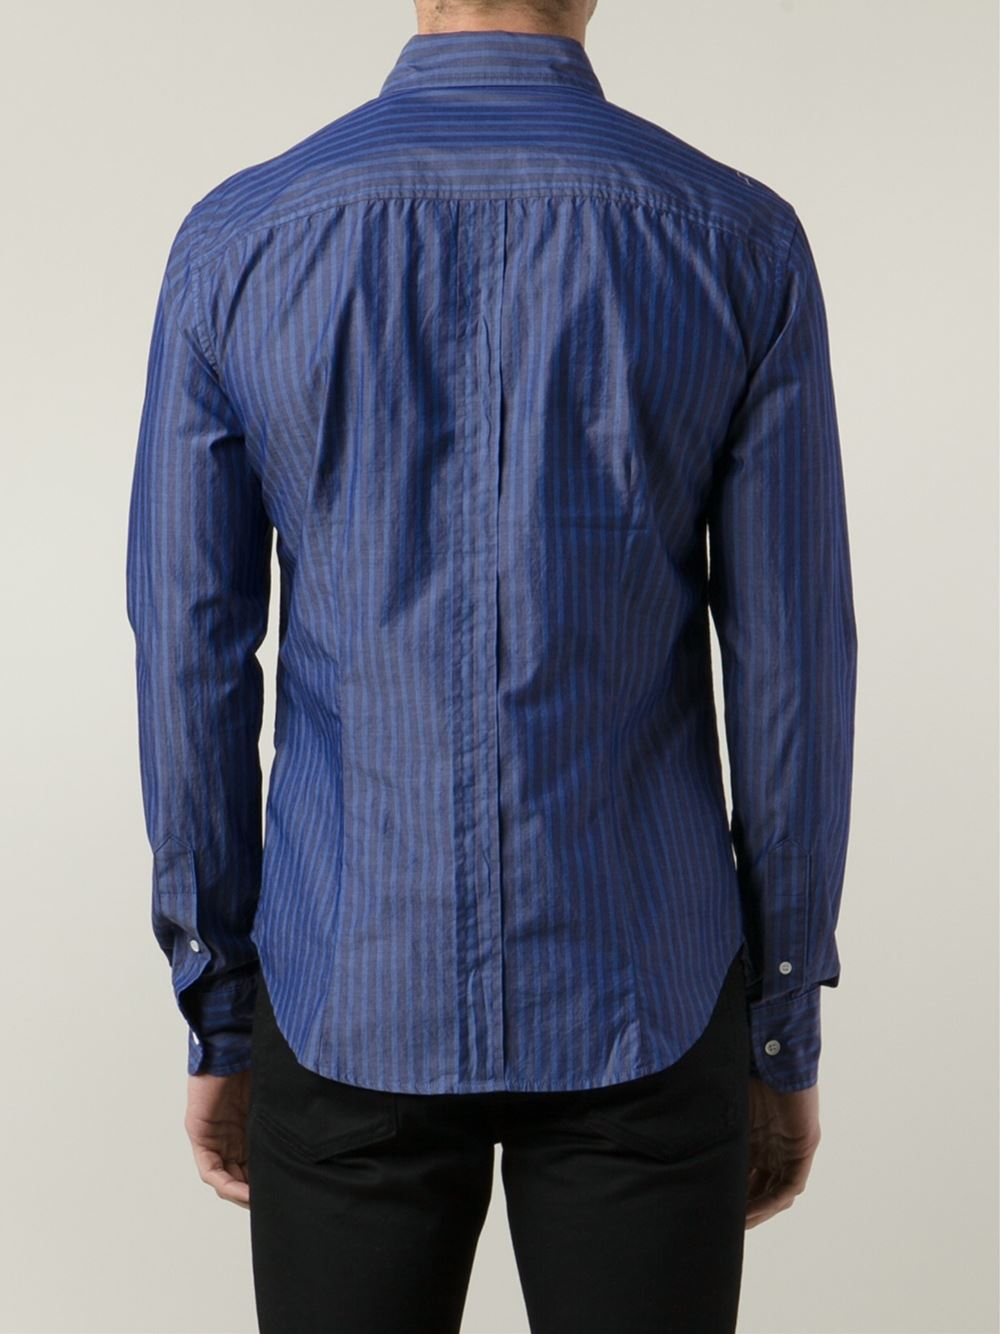 Band of outsiders striped button down shirt in blue for for Striped button down shirts for men